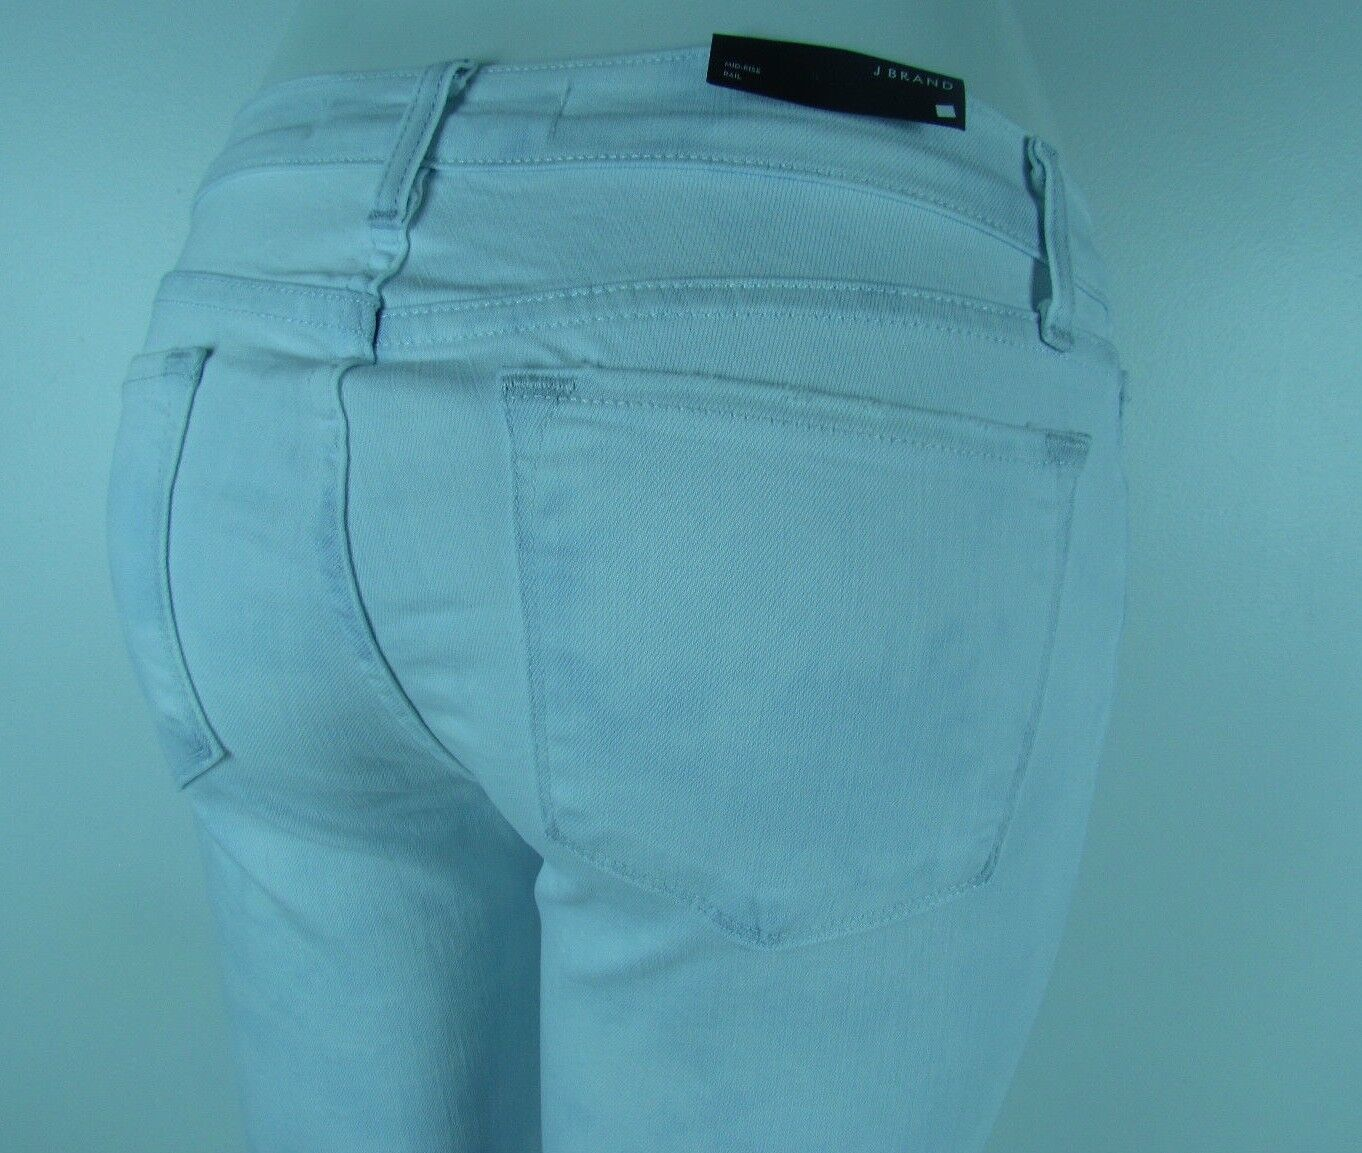 J BRAND 8112 SKINNY RAIL Mid Rise Destroyed Woman Jeans 26 in RUNAWAY WHITE